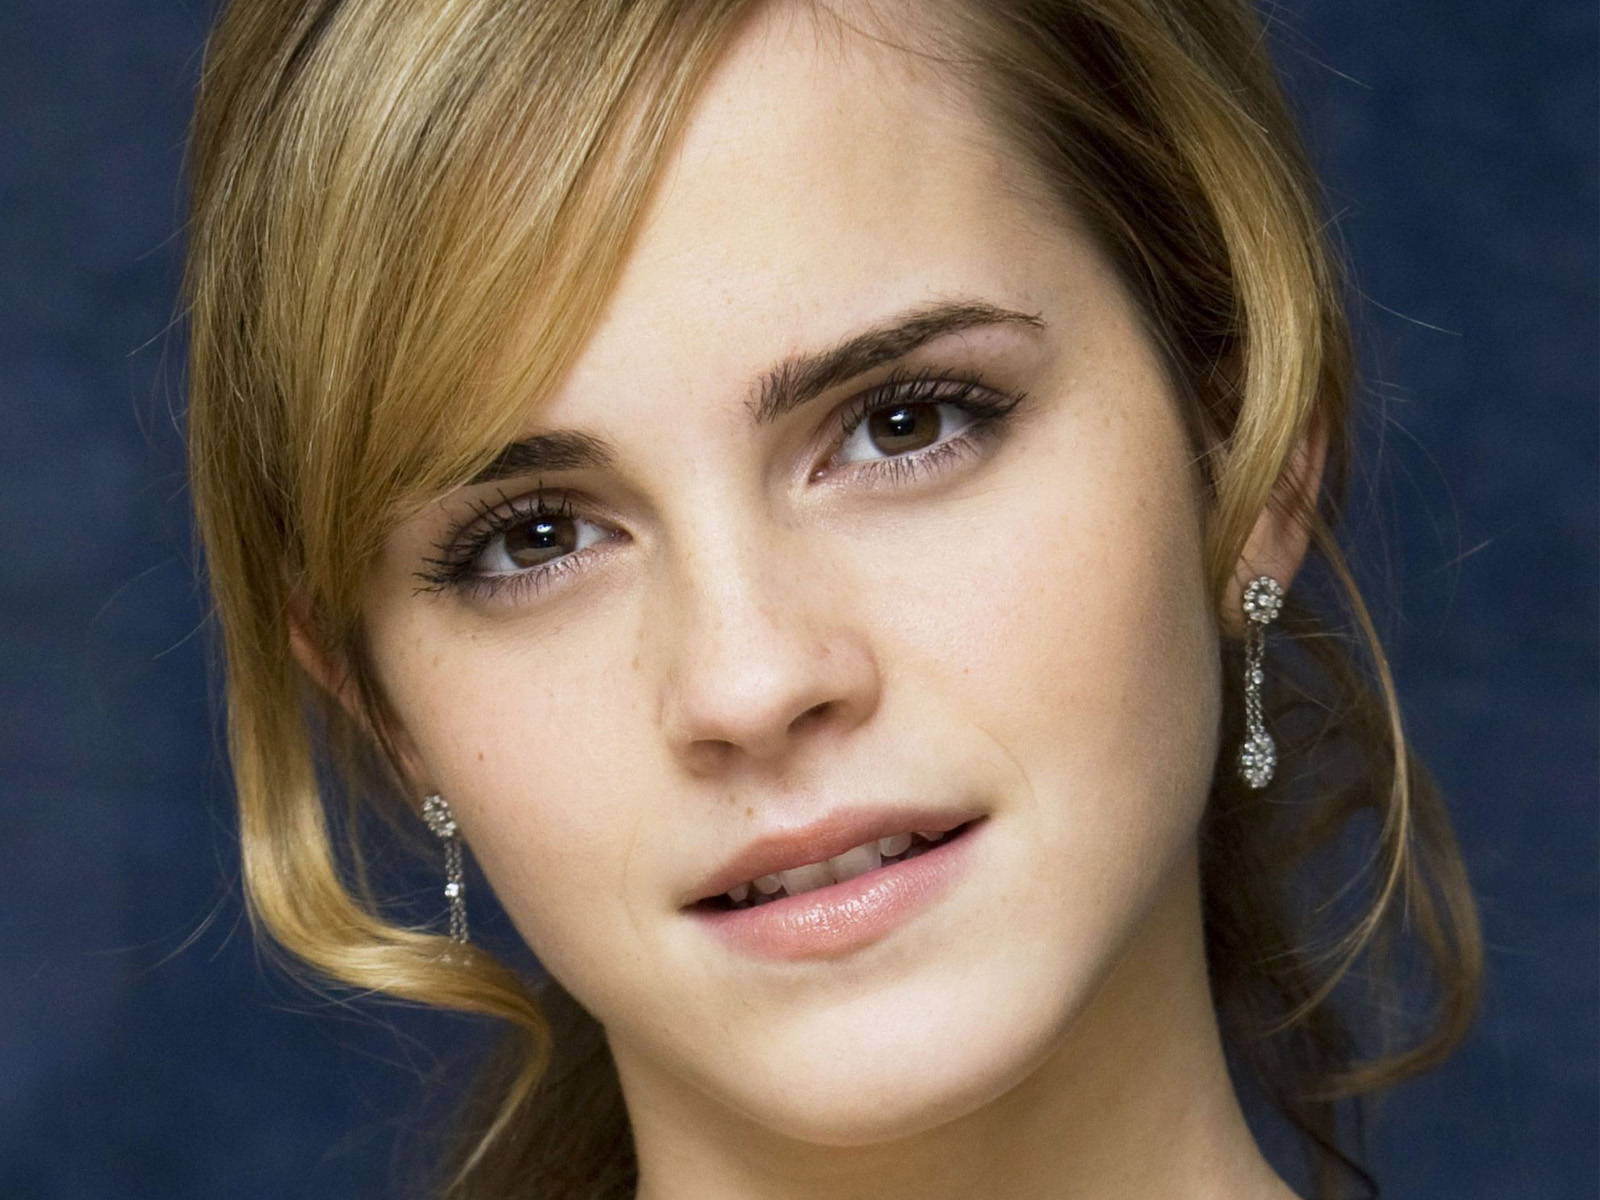 Emma Watson Very Close Beautiful HD